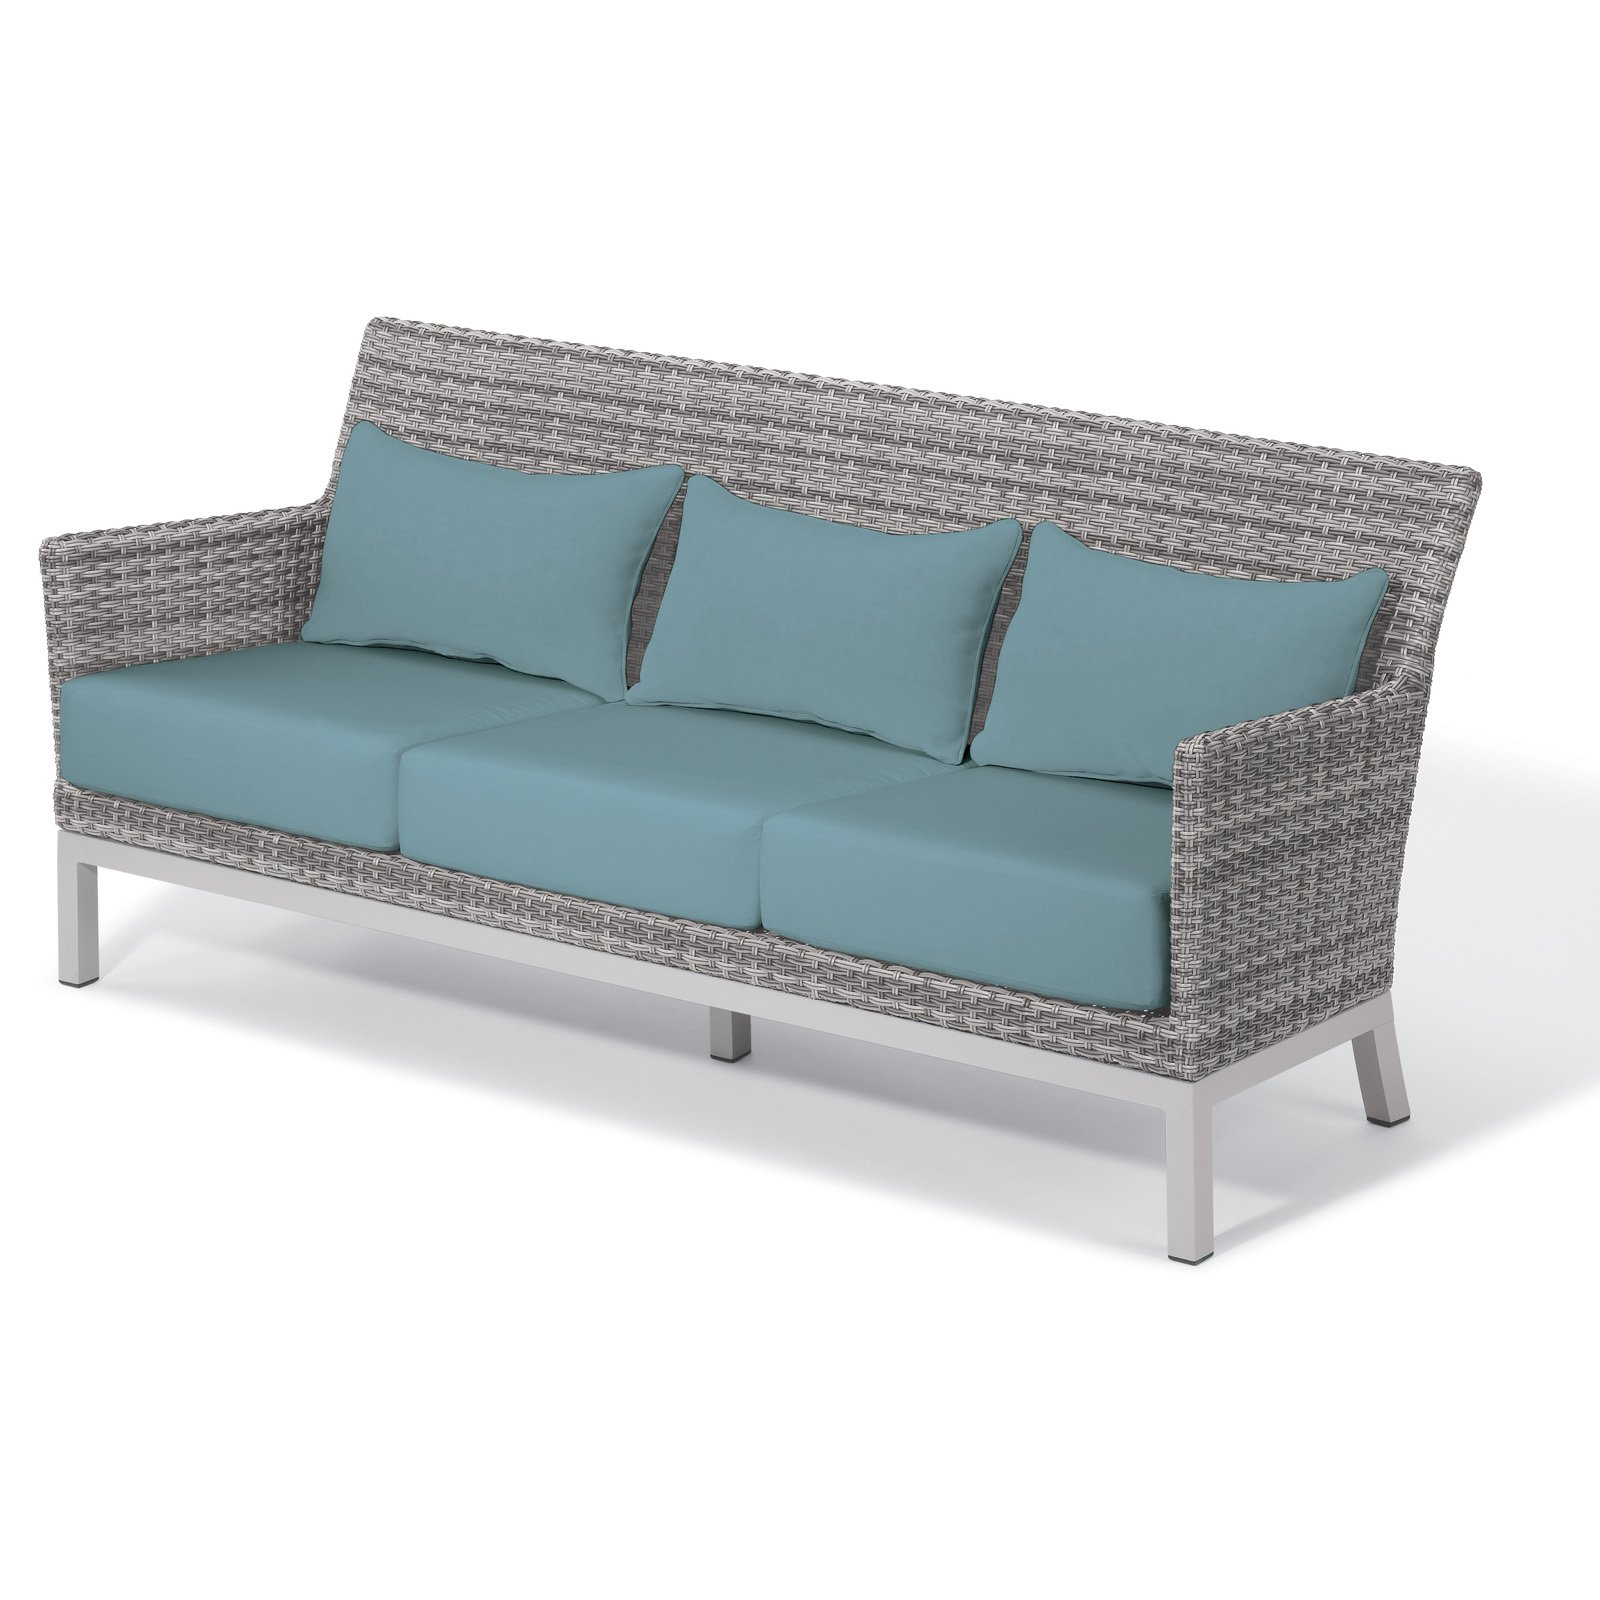 2020 Outdoor Oxford Garden Argento Resin Wicker Patio Sofa Ice Throughout Baca Patio Sofas With Cushions (View 1 of 25)